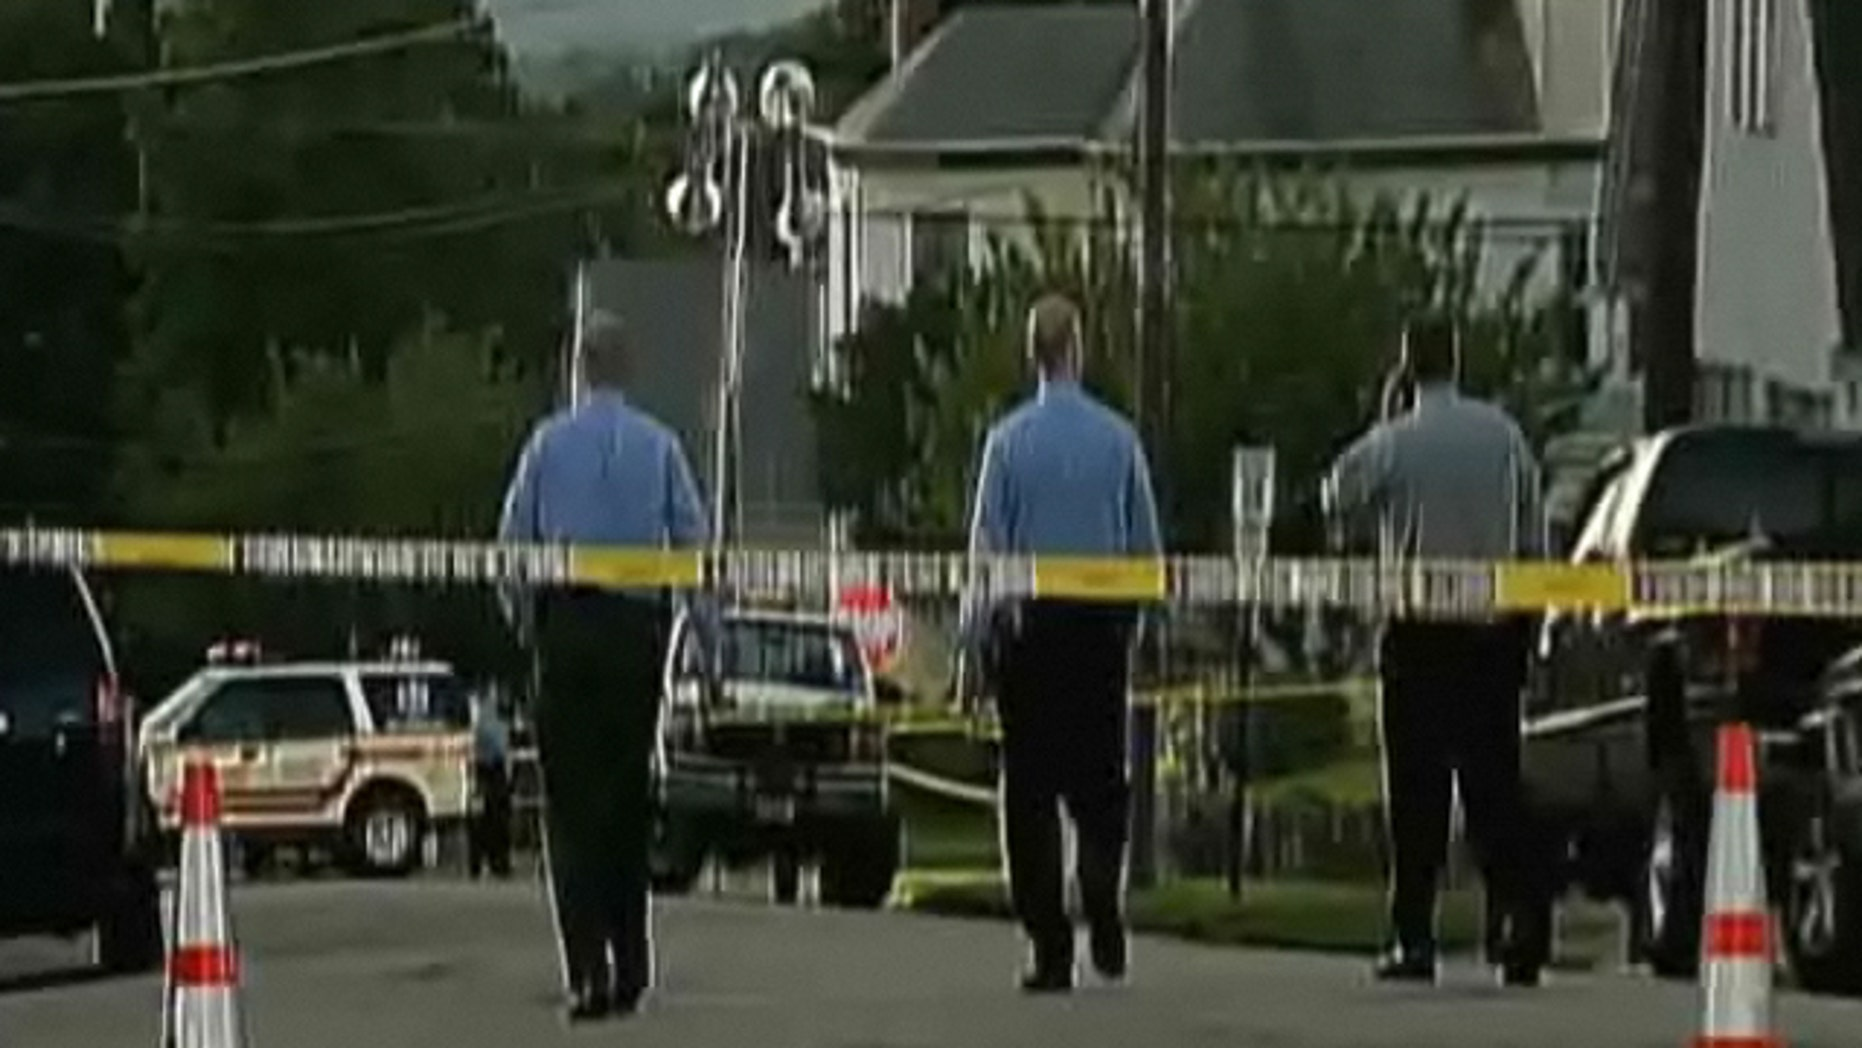 New Jersey police inspect the scene of a shooting that claimed the life of a woman.